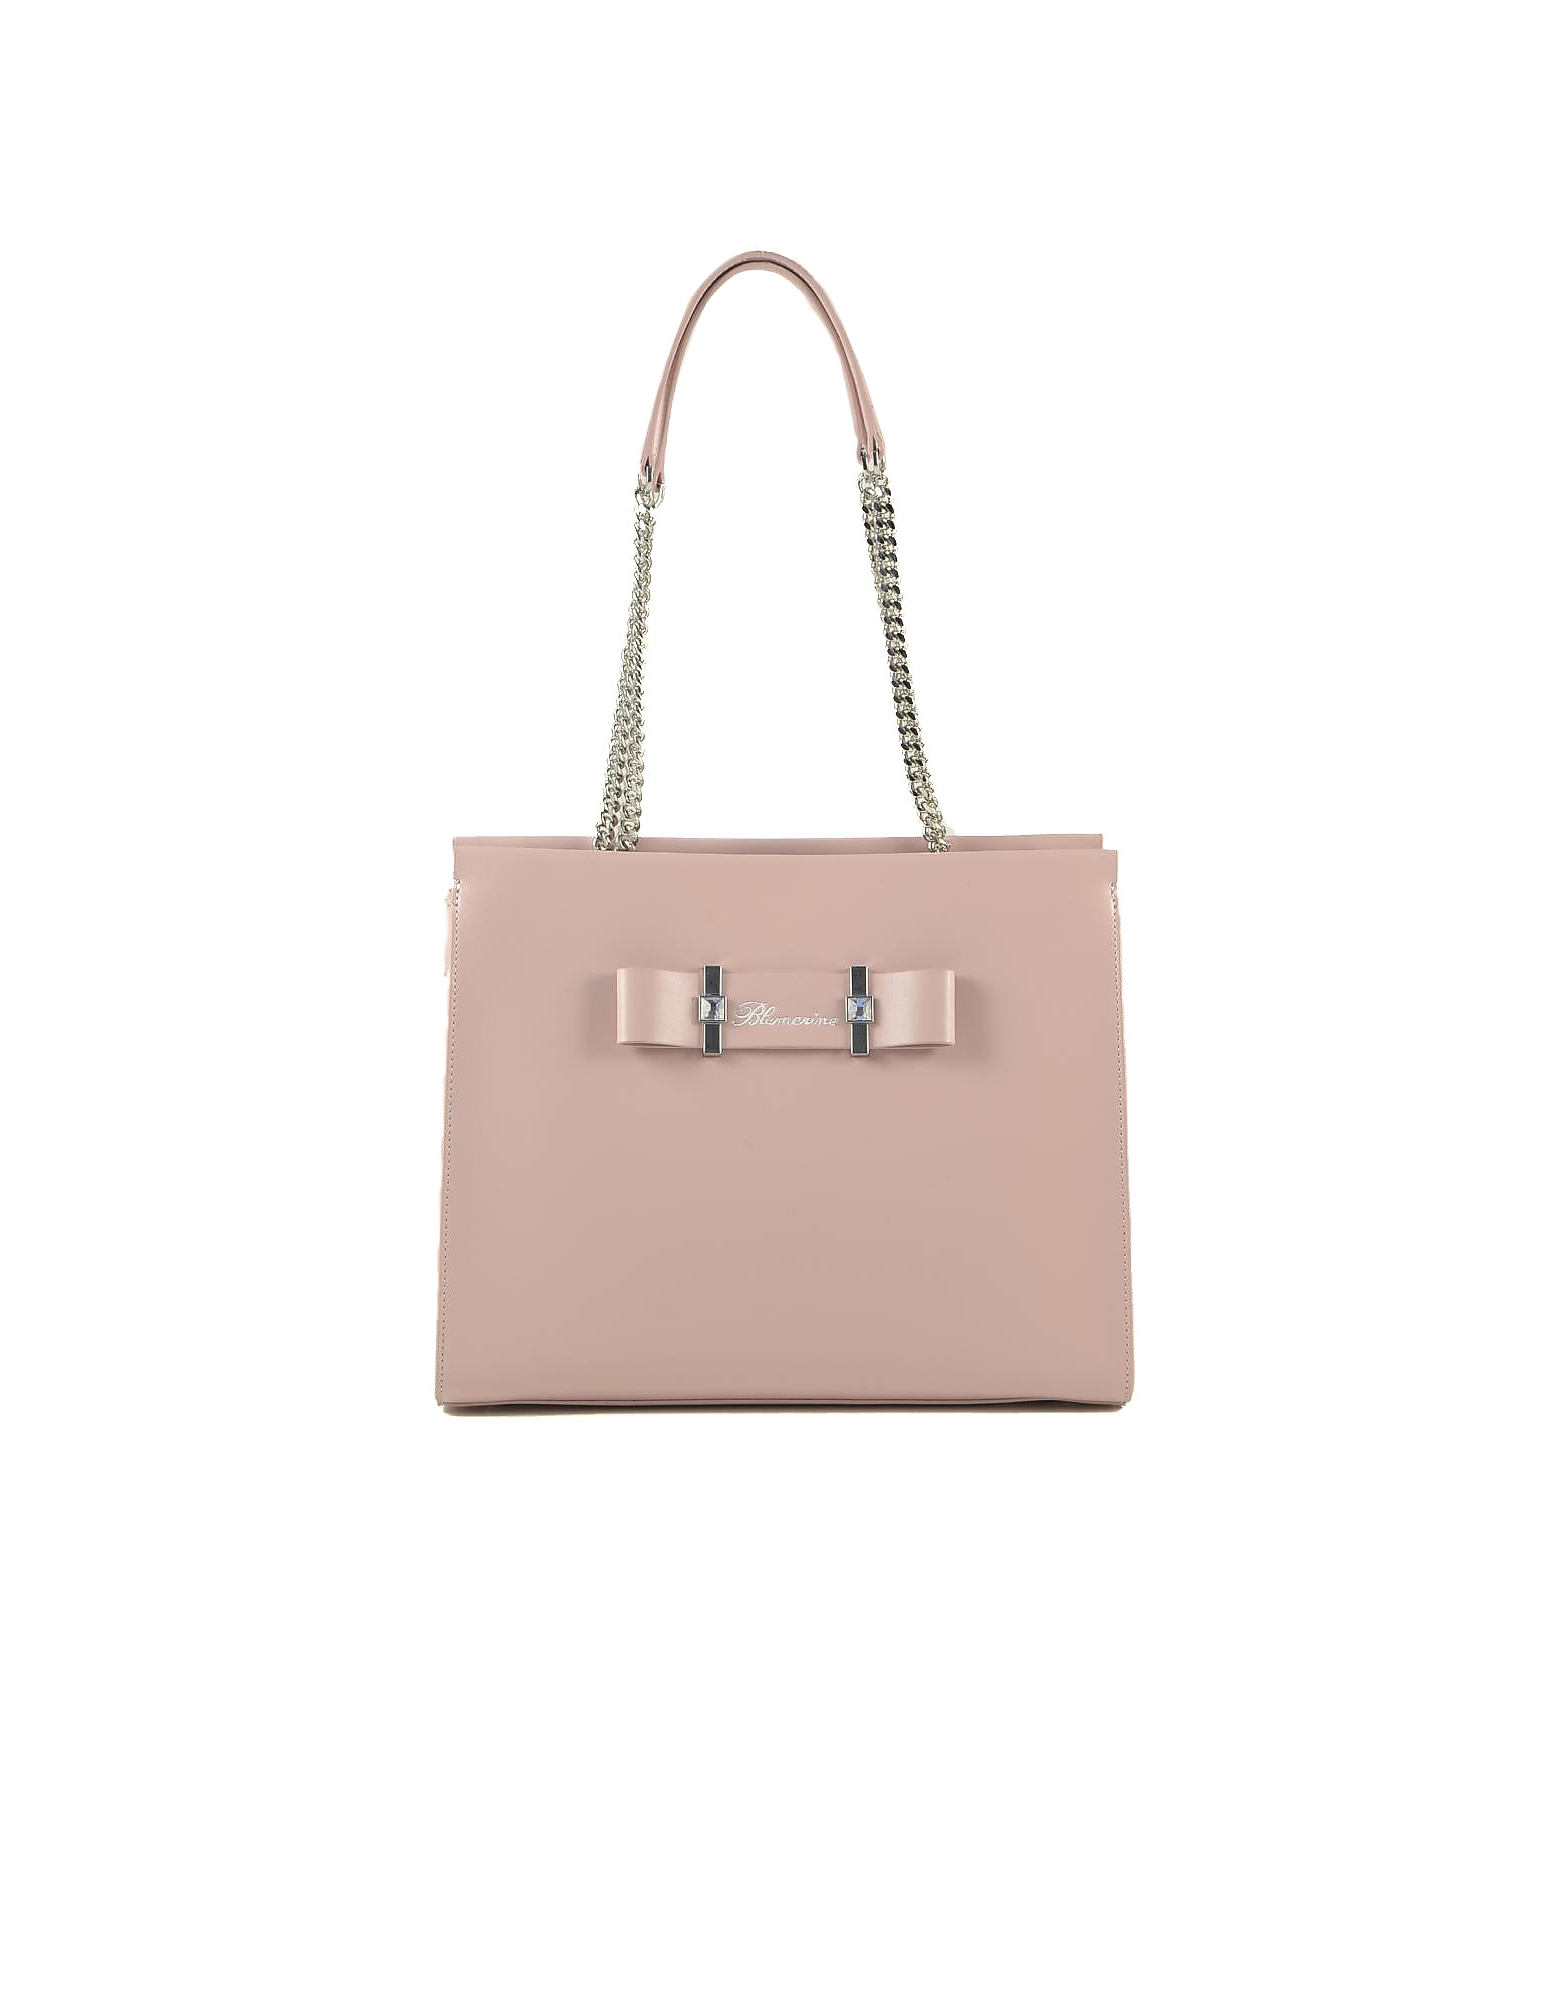 Blumarine Designer Handbags, Charlotte Light Pink Leather Tote Bag